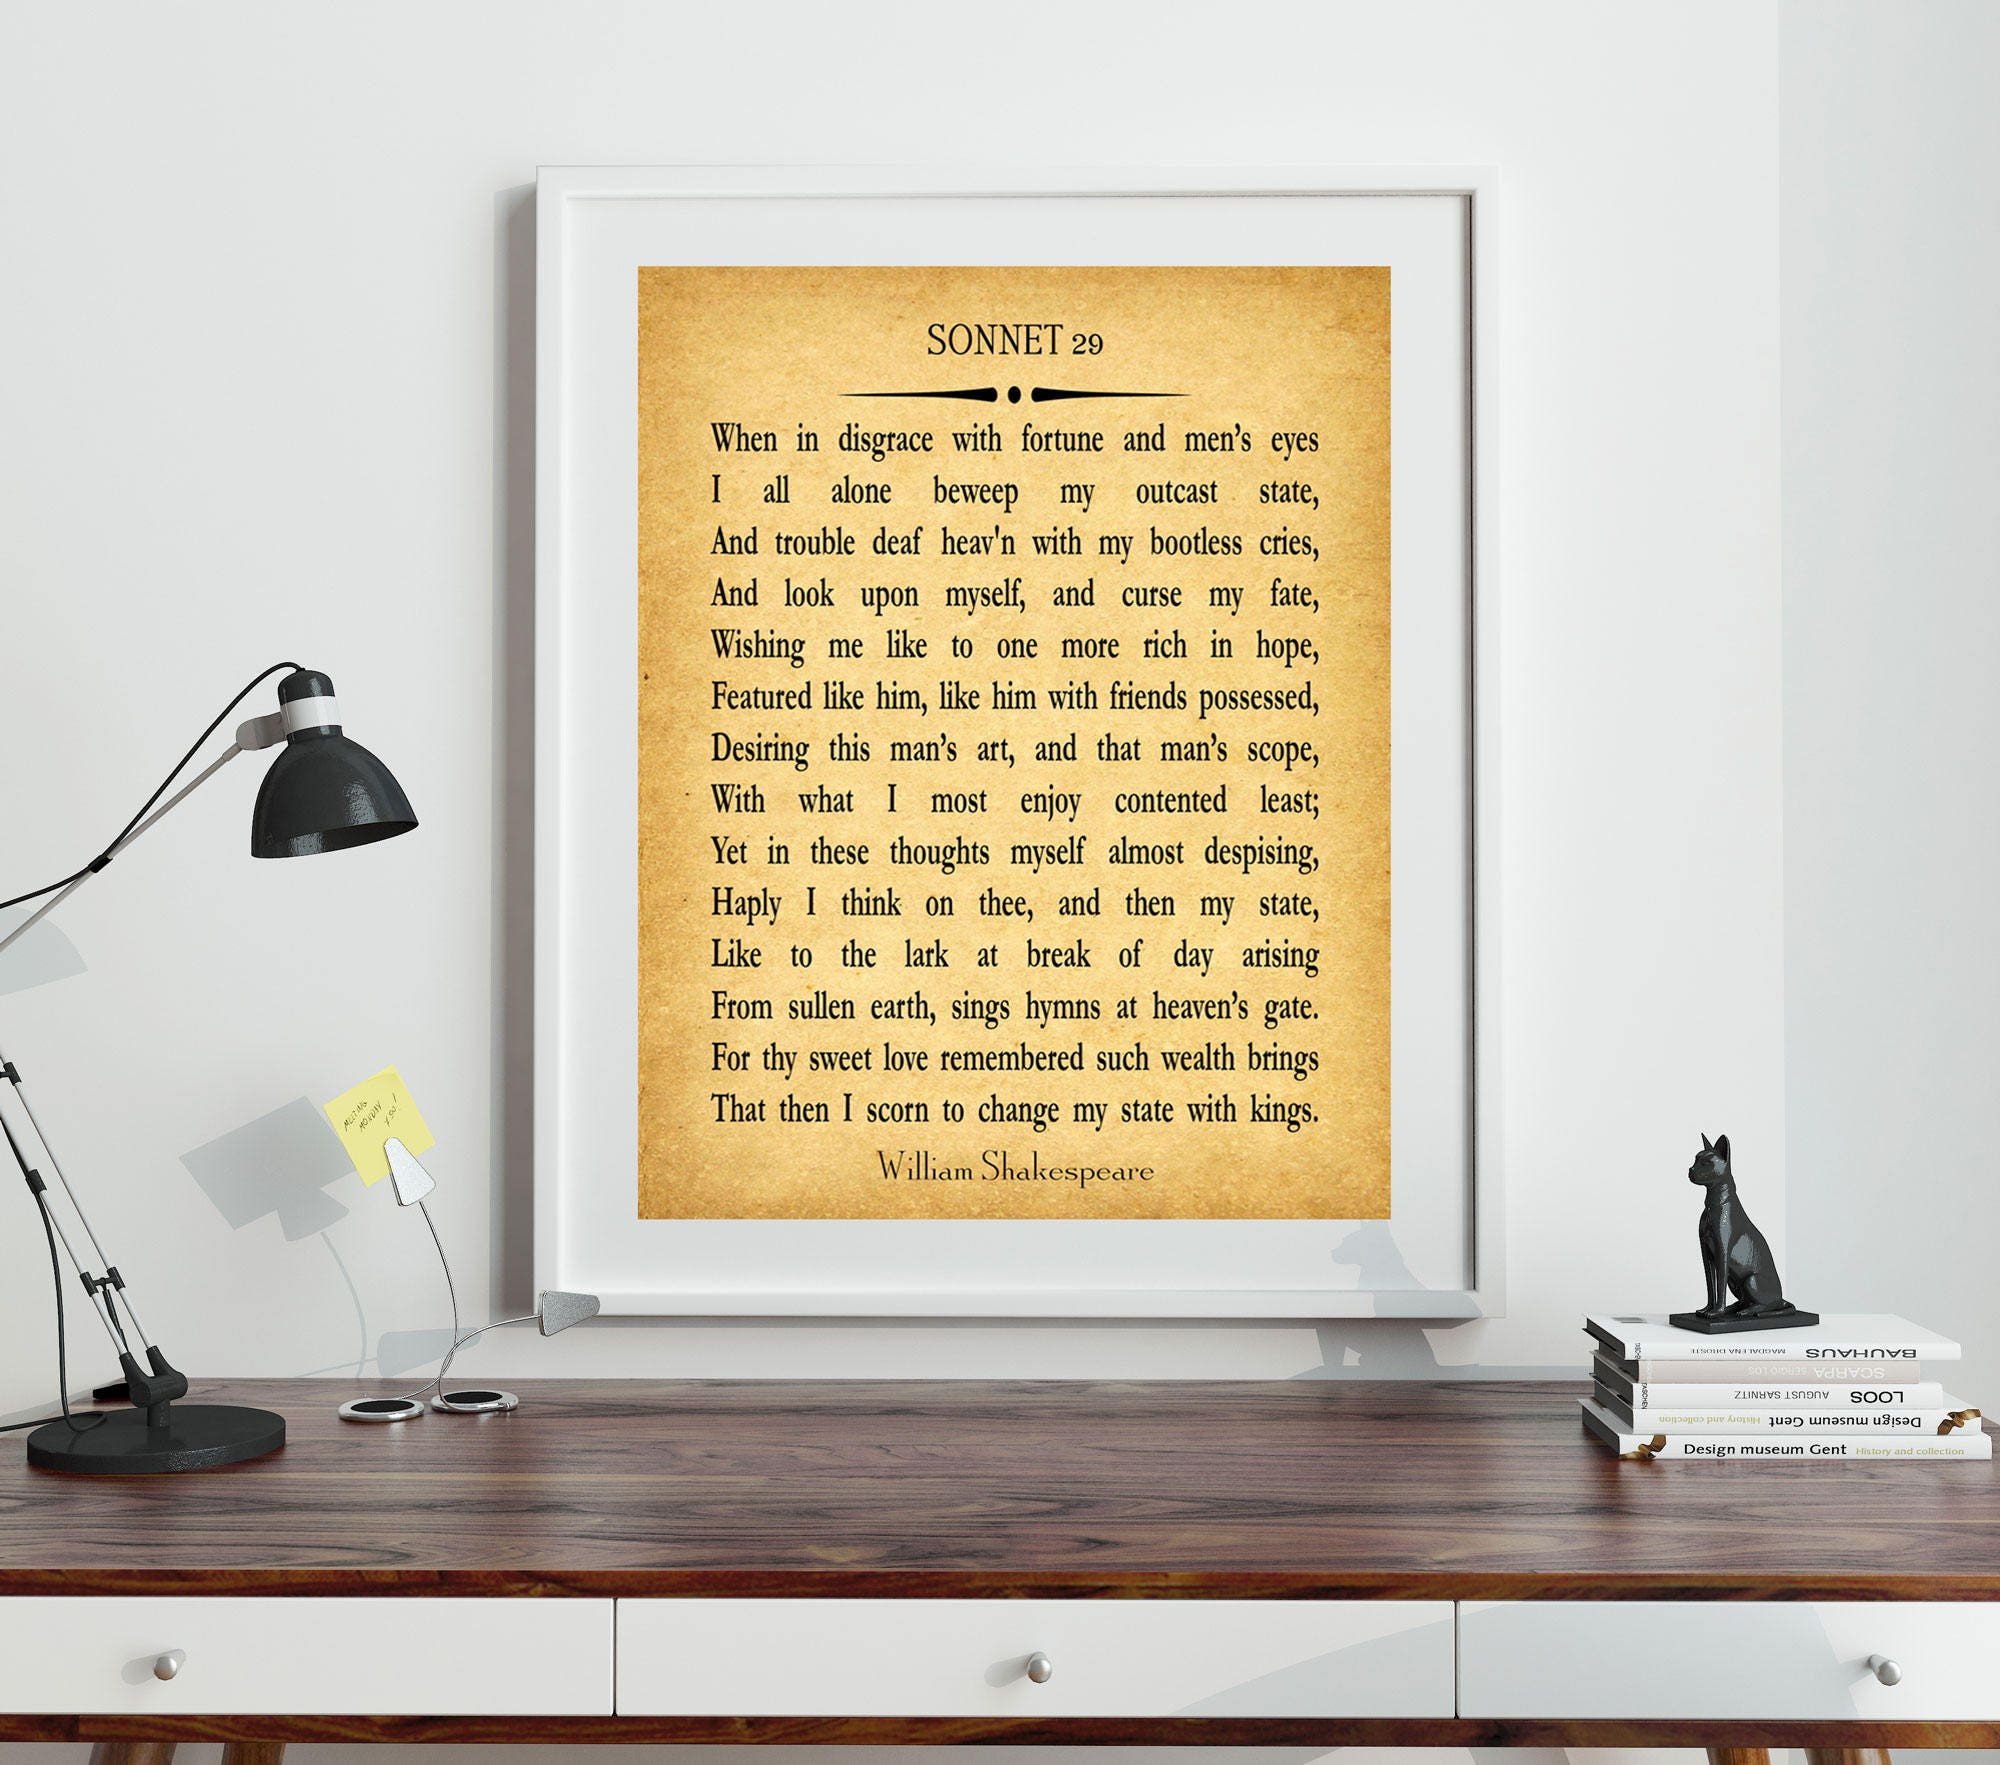 Sonnet 29 by William Shakespeare Poetry Wall Art Poetry Print Poetry ...